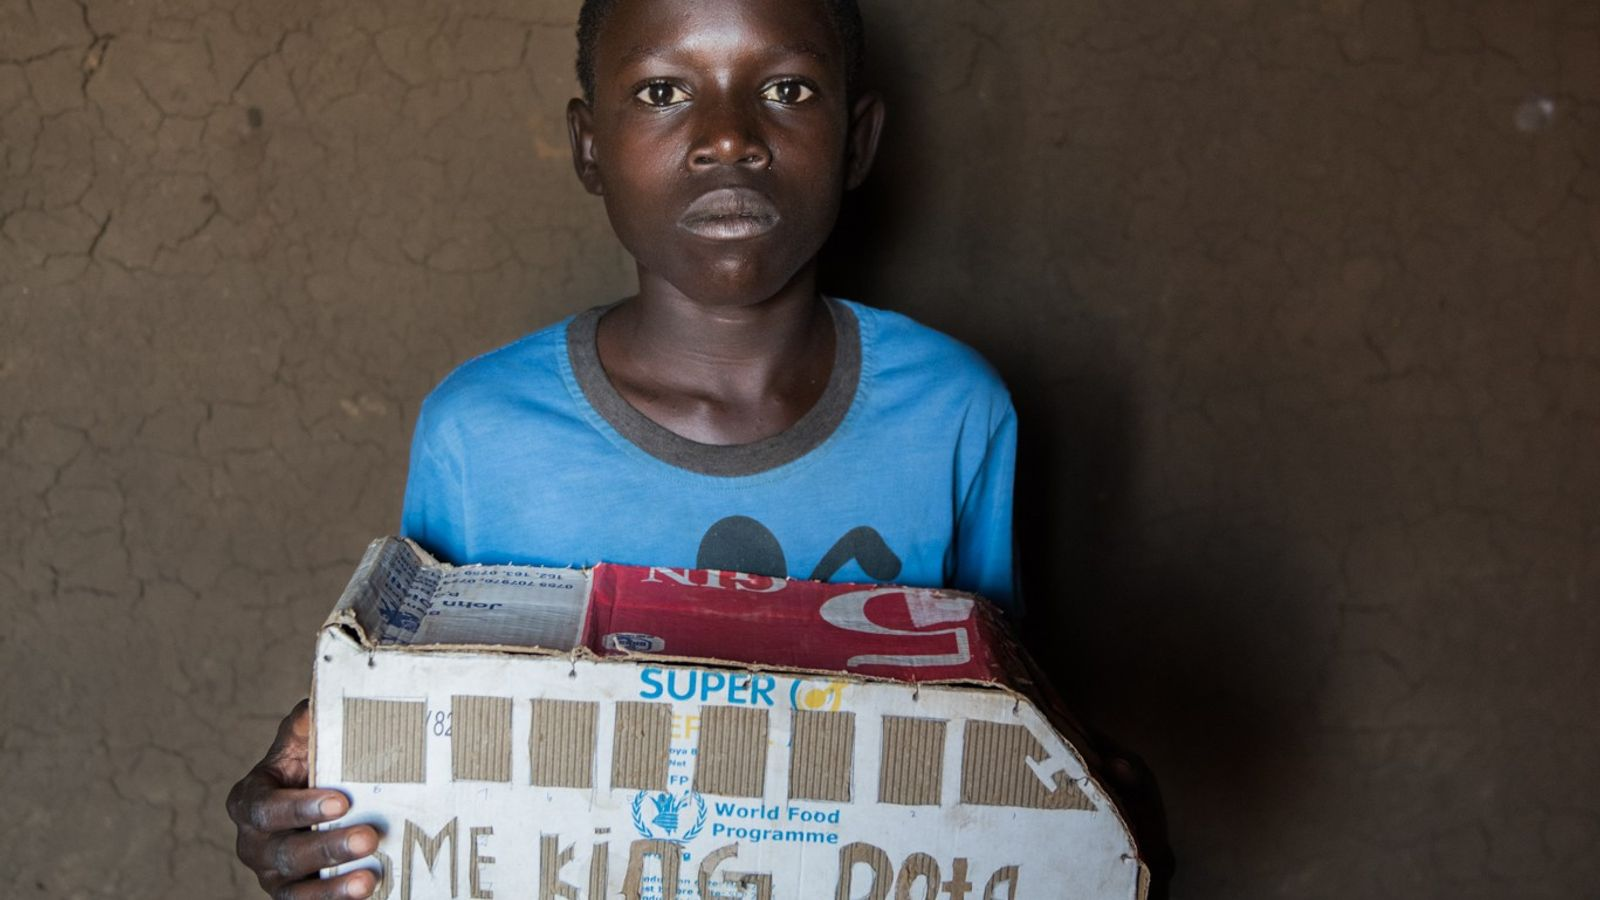 Isaac Lemi, a 13-year-old refugee from South Sudan living in Uganda, holds a toy bus he ...